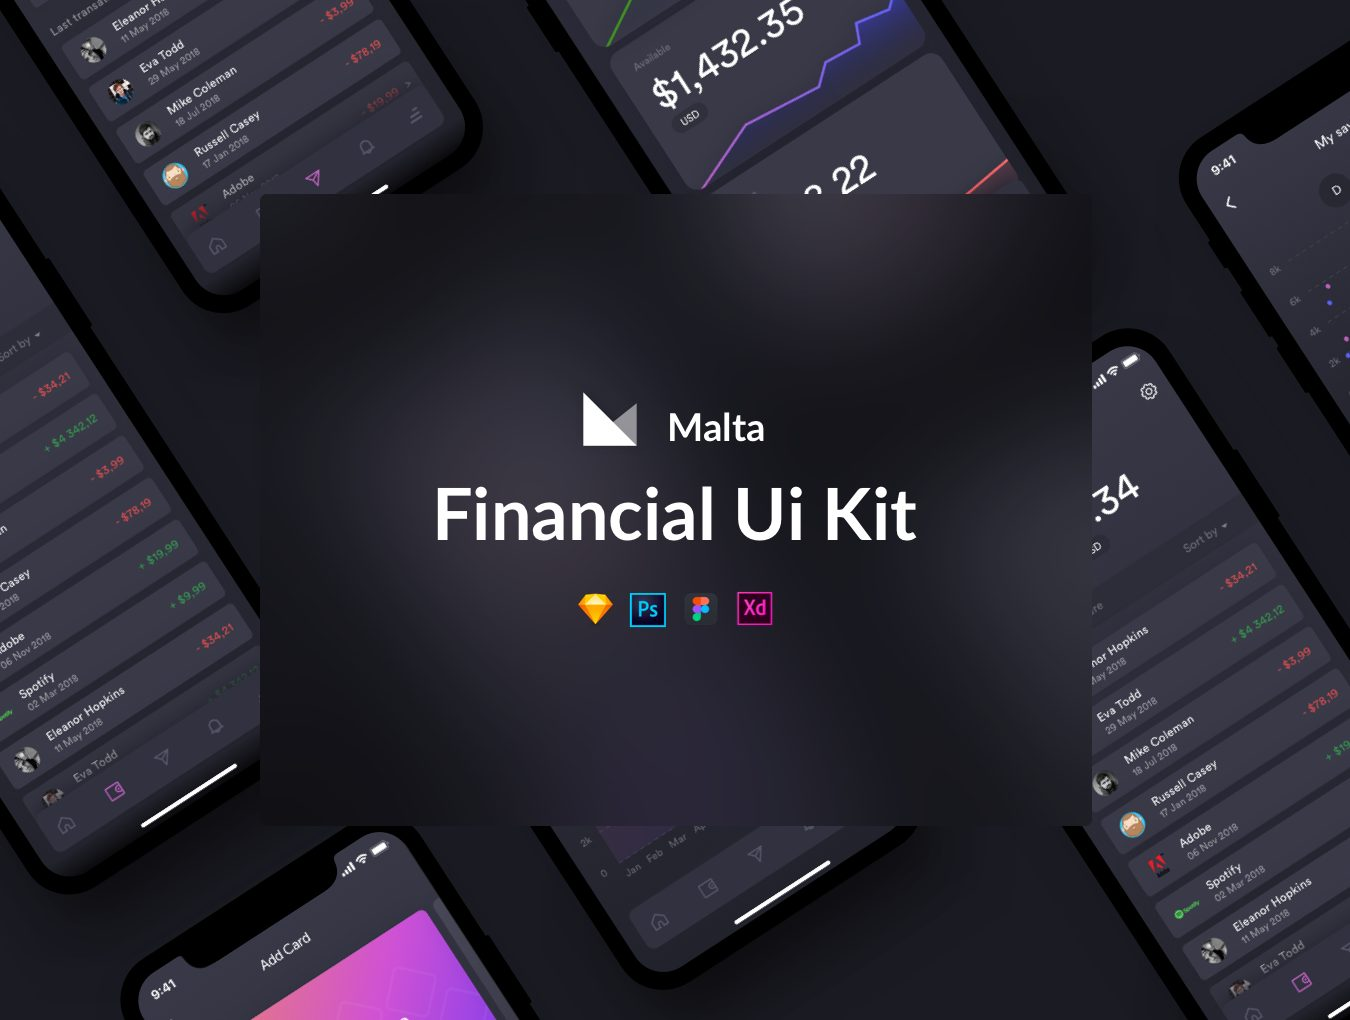 黑色金融行业APP Malta Financial UI Kit